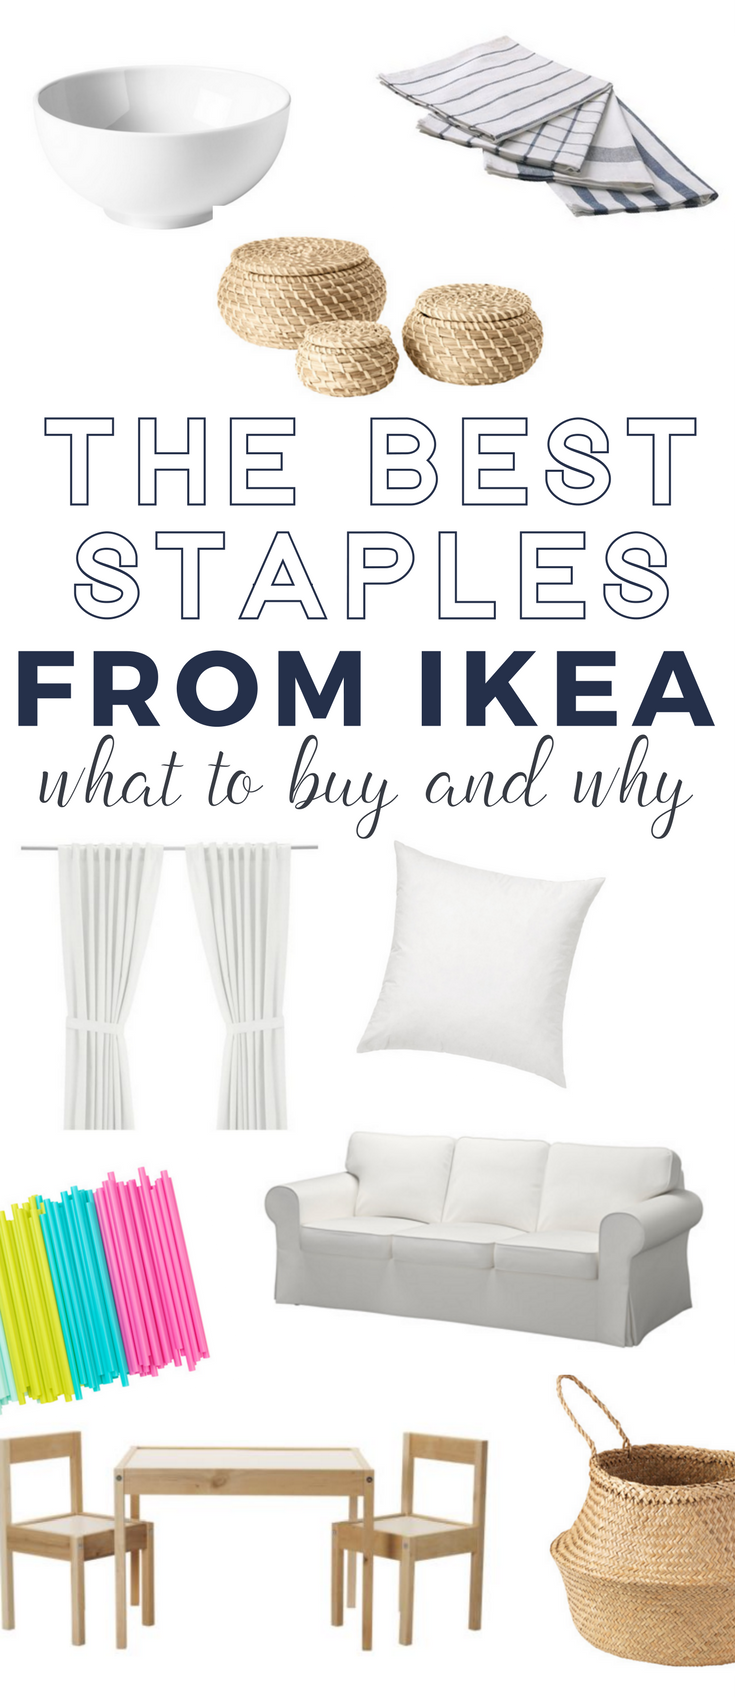 Ikea Staples what to Buy from IKEA